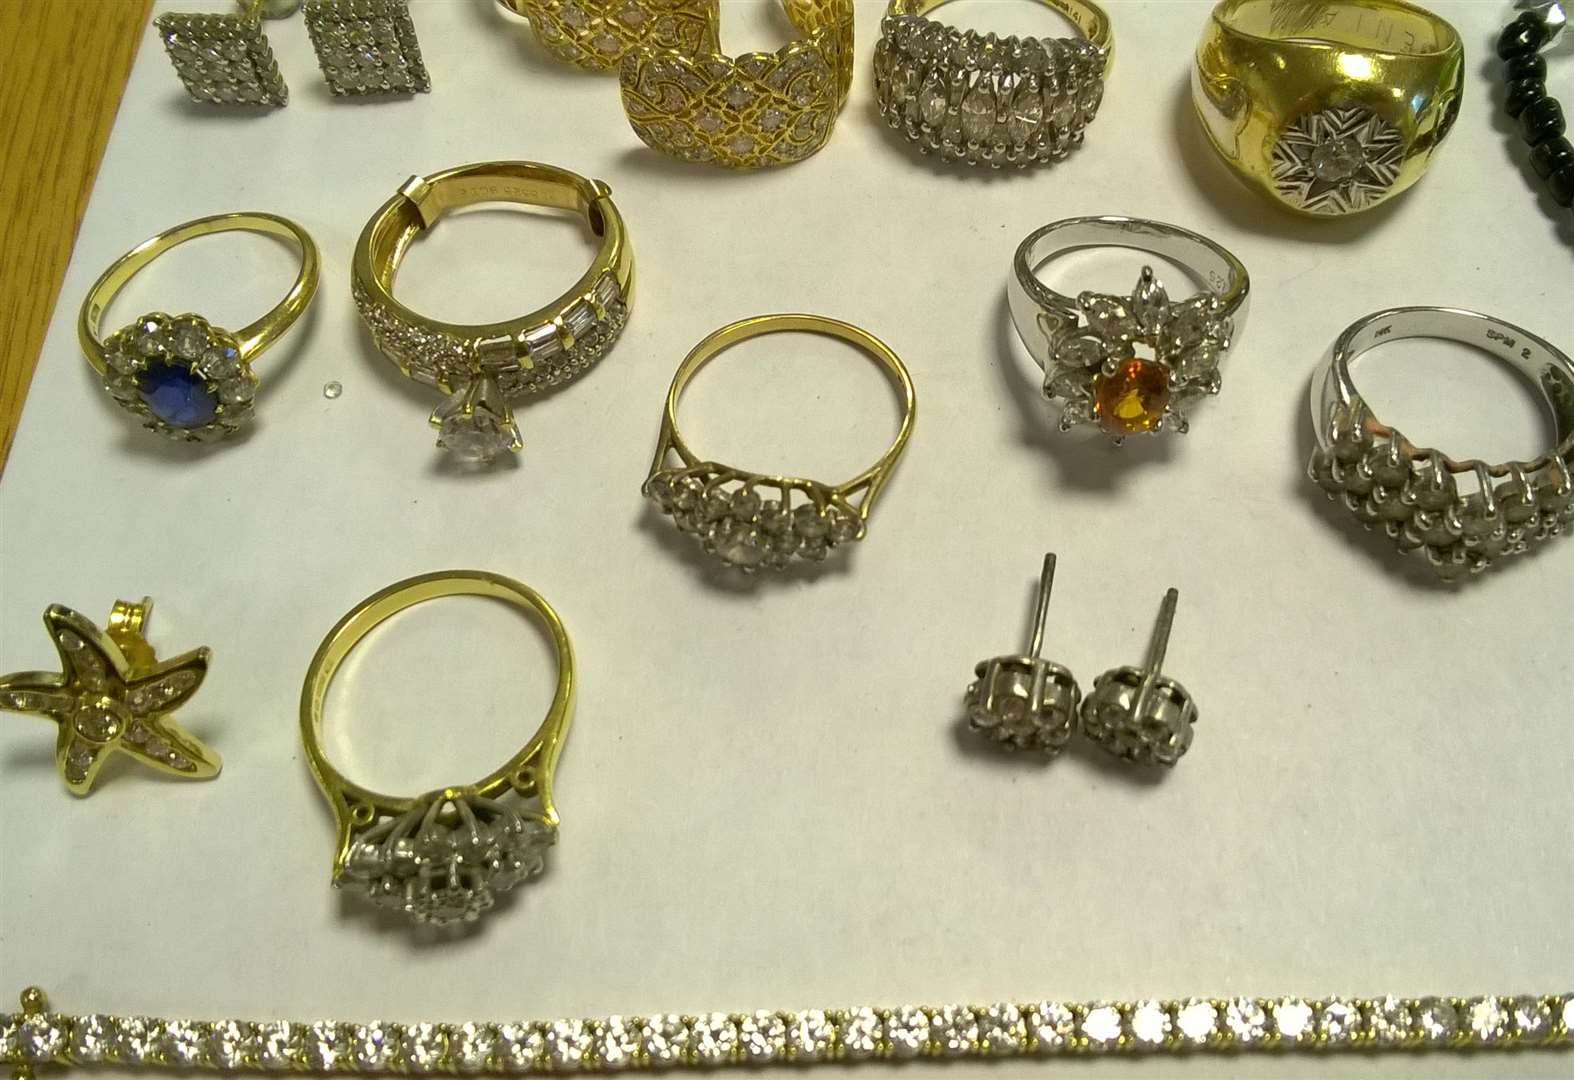 Bid to reunite stolen property with rightful owners